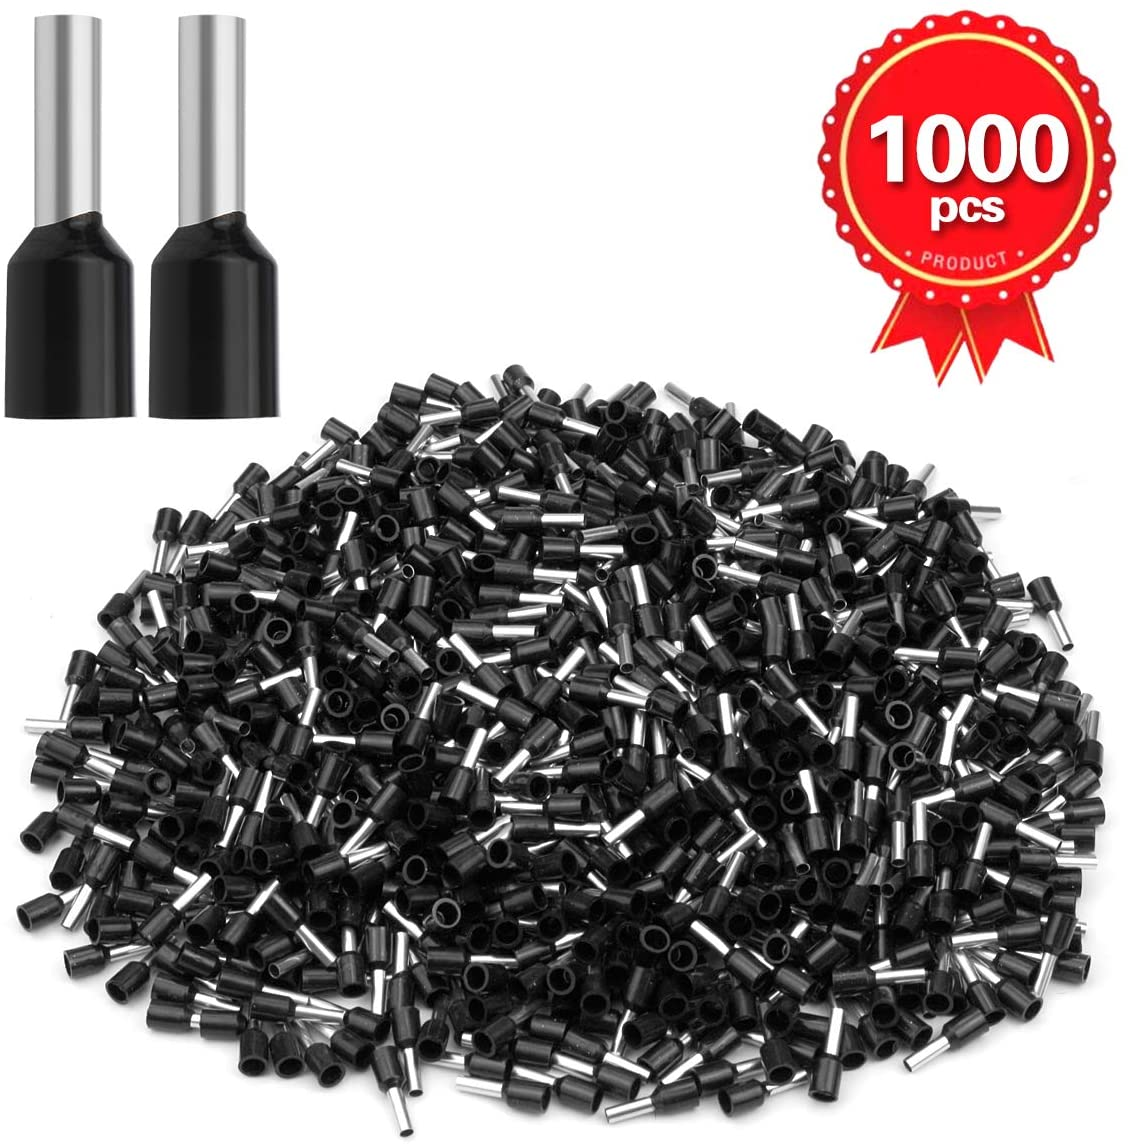 XHF 1000 PCS AWG 16 Ferrule Crimper Plier Insulated Crimp Pin Terminal Cord End Terminals, Wire Ferrules Terminals, Wire Connector, Insulated Cord Pin End Terminal 1.5mm² Black